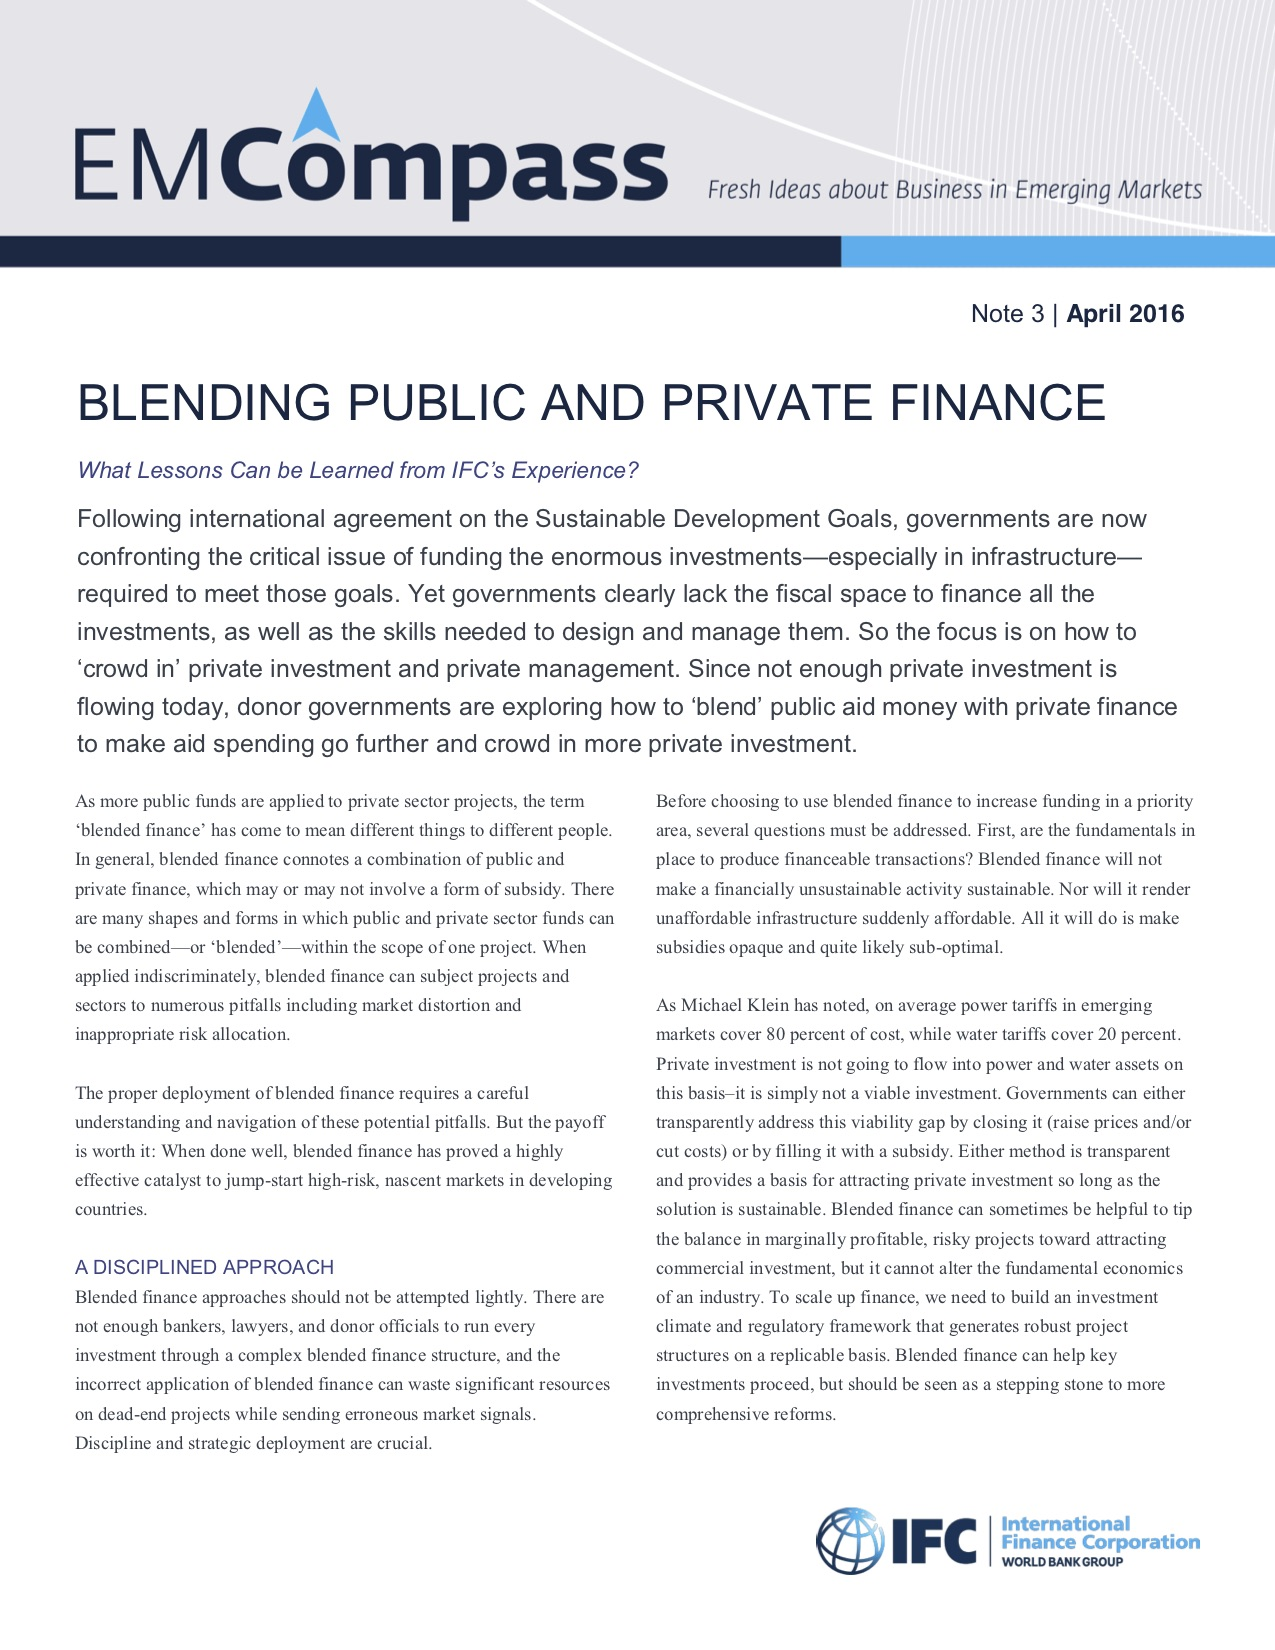 Blending Public and Private Finance